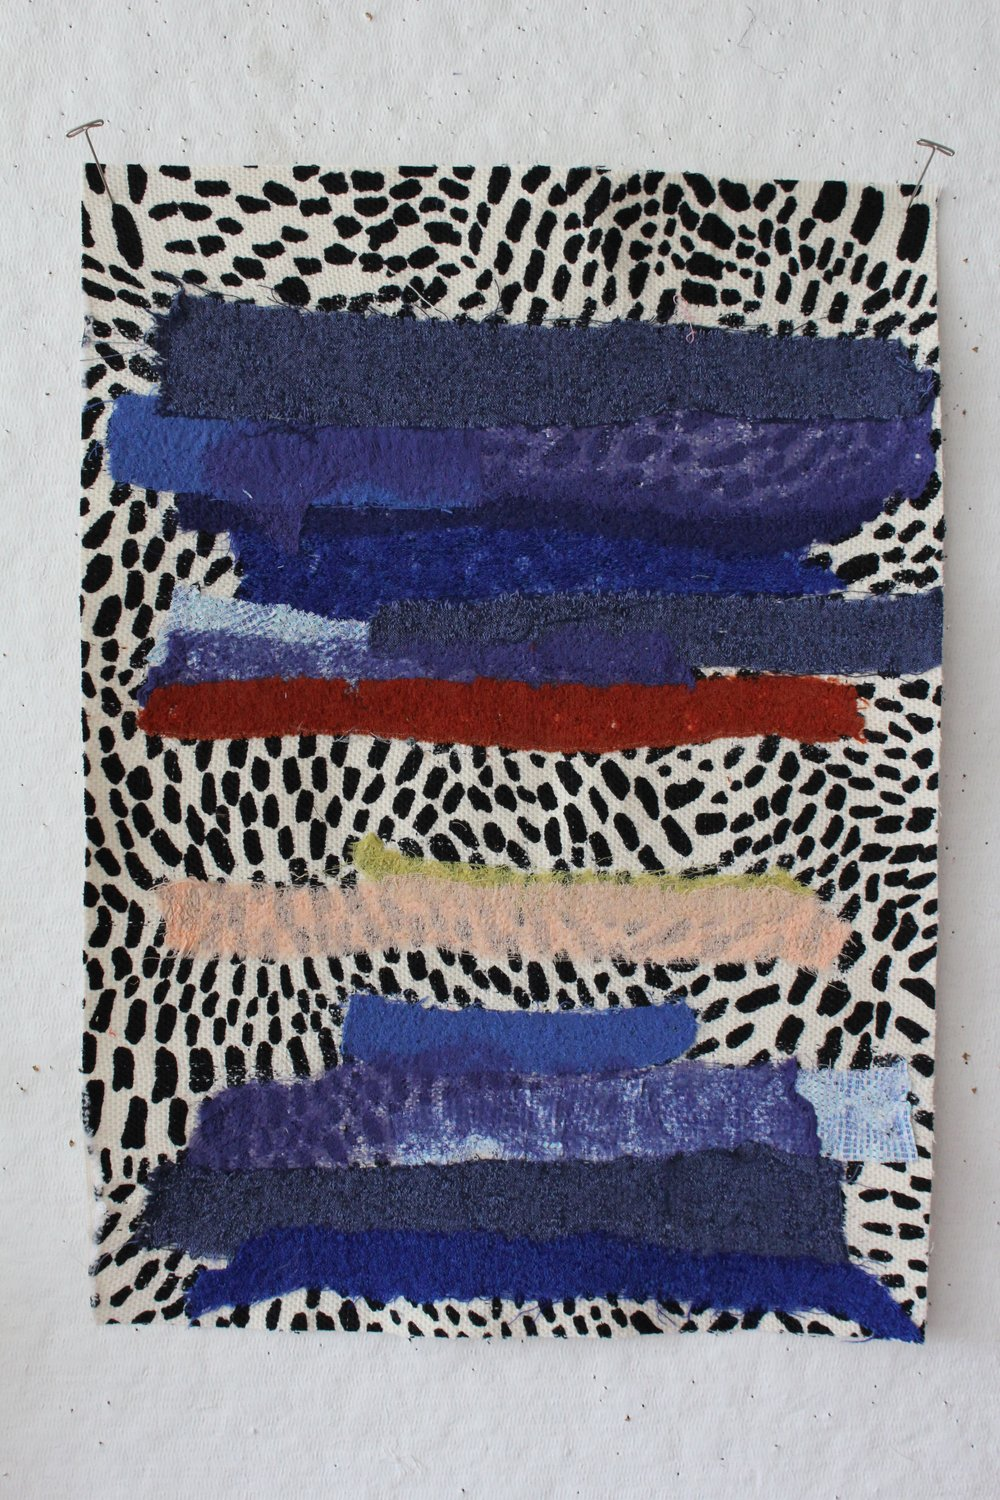 Felted fabric collage